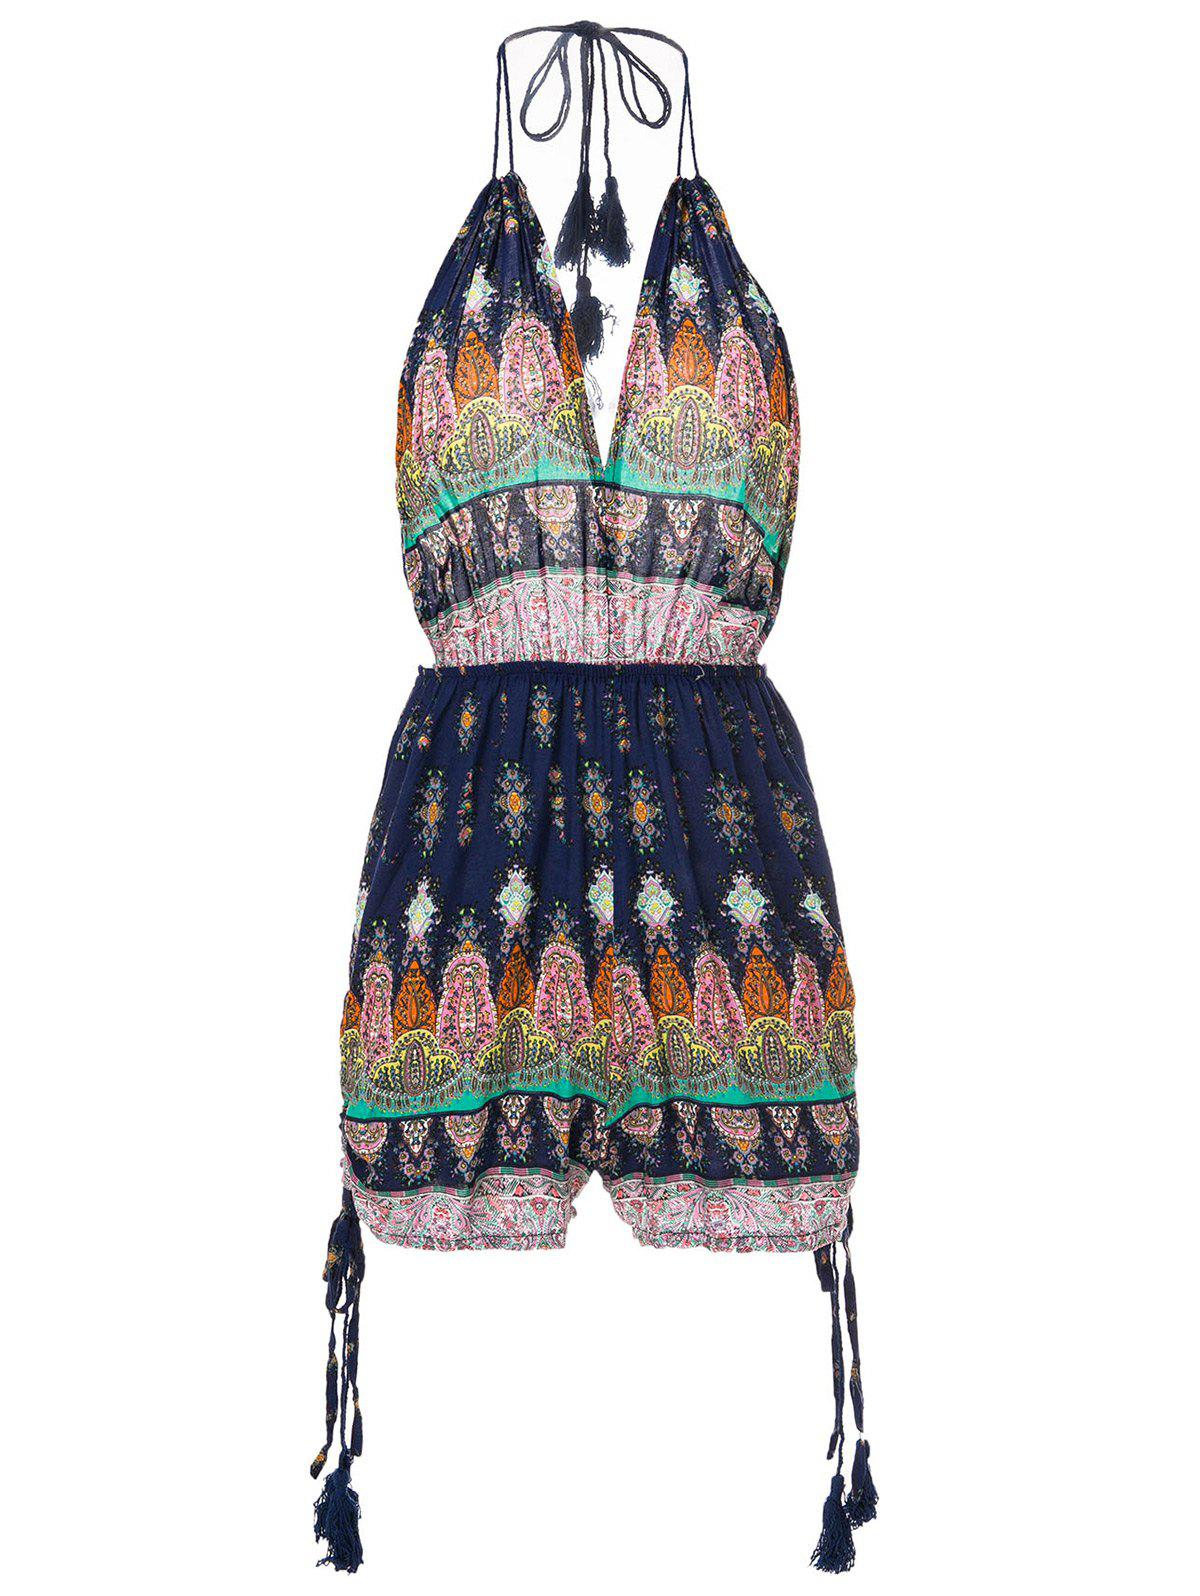 Casual Halter Sleeveless Printed Low Cut Backless Womens RomperWomen<br><br><br>Size: S<br>Color: PURPLISH BLUE